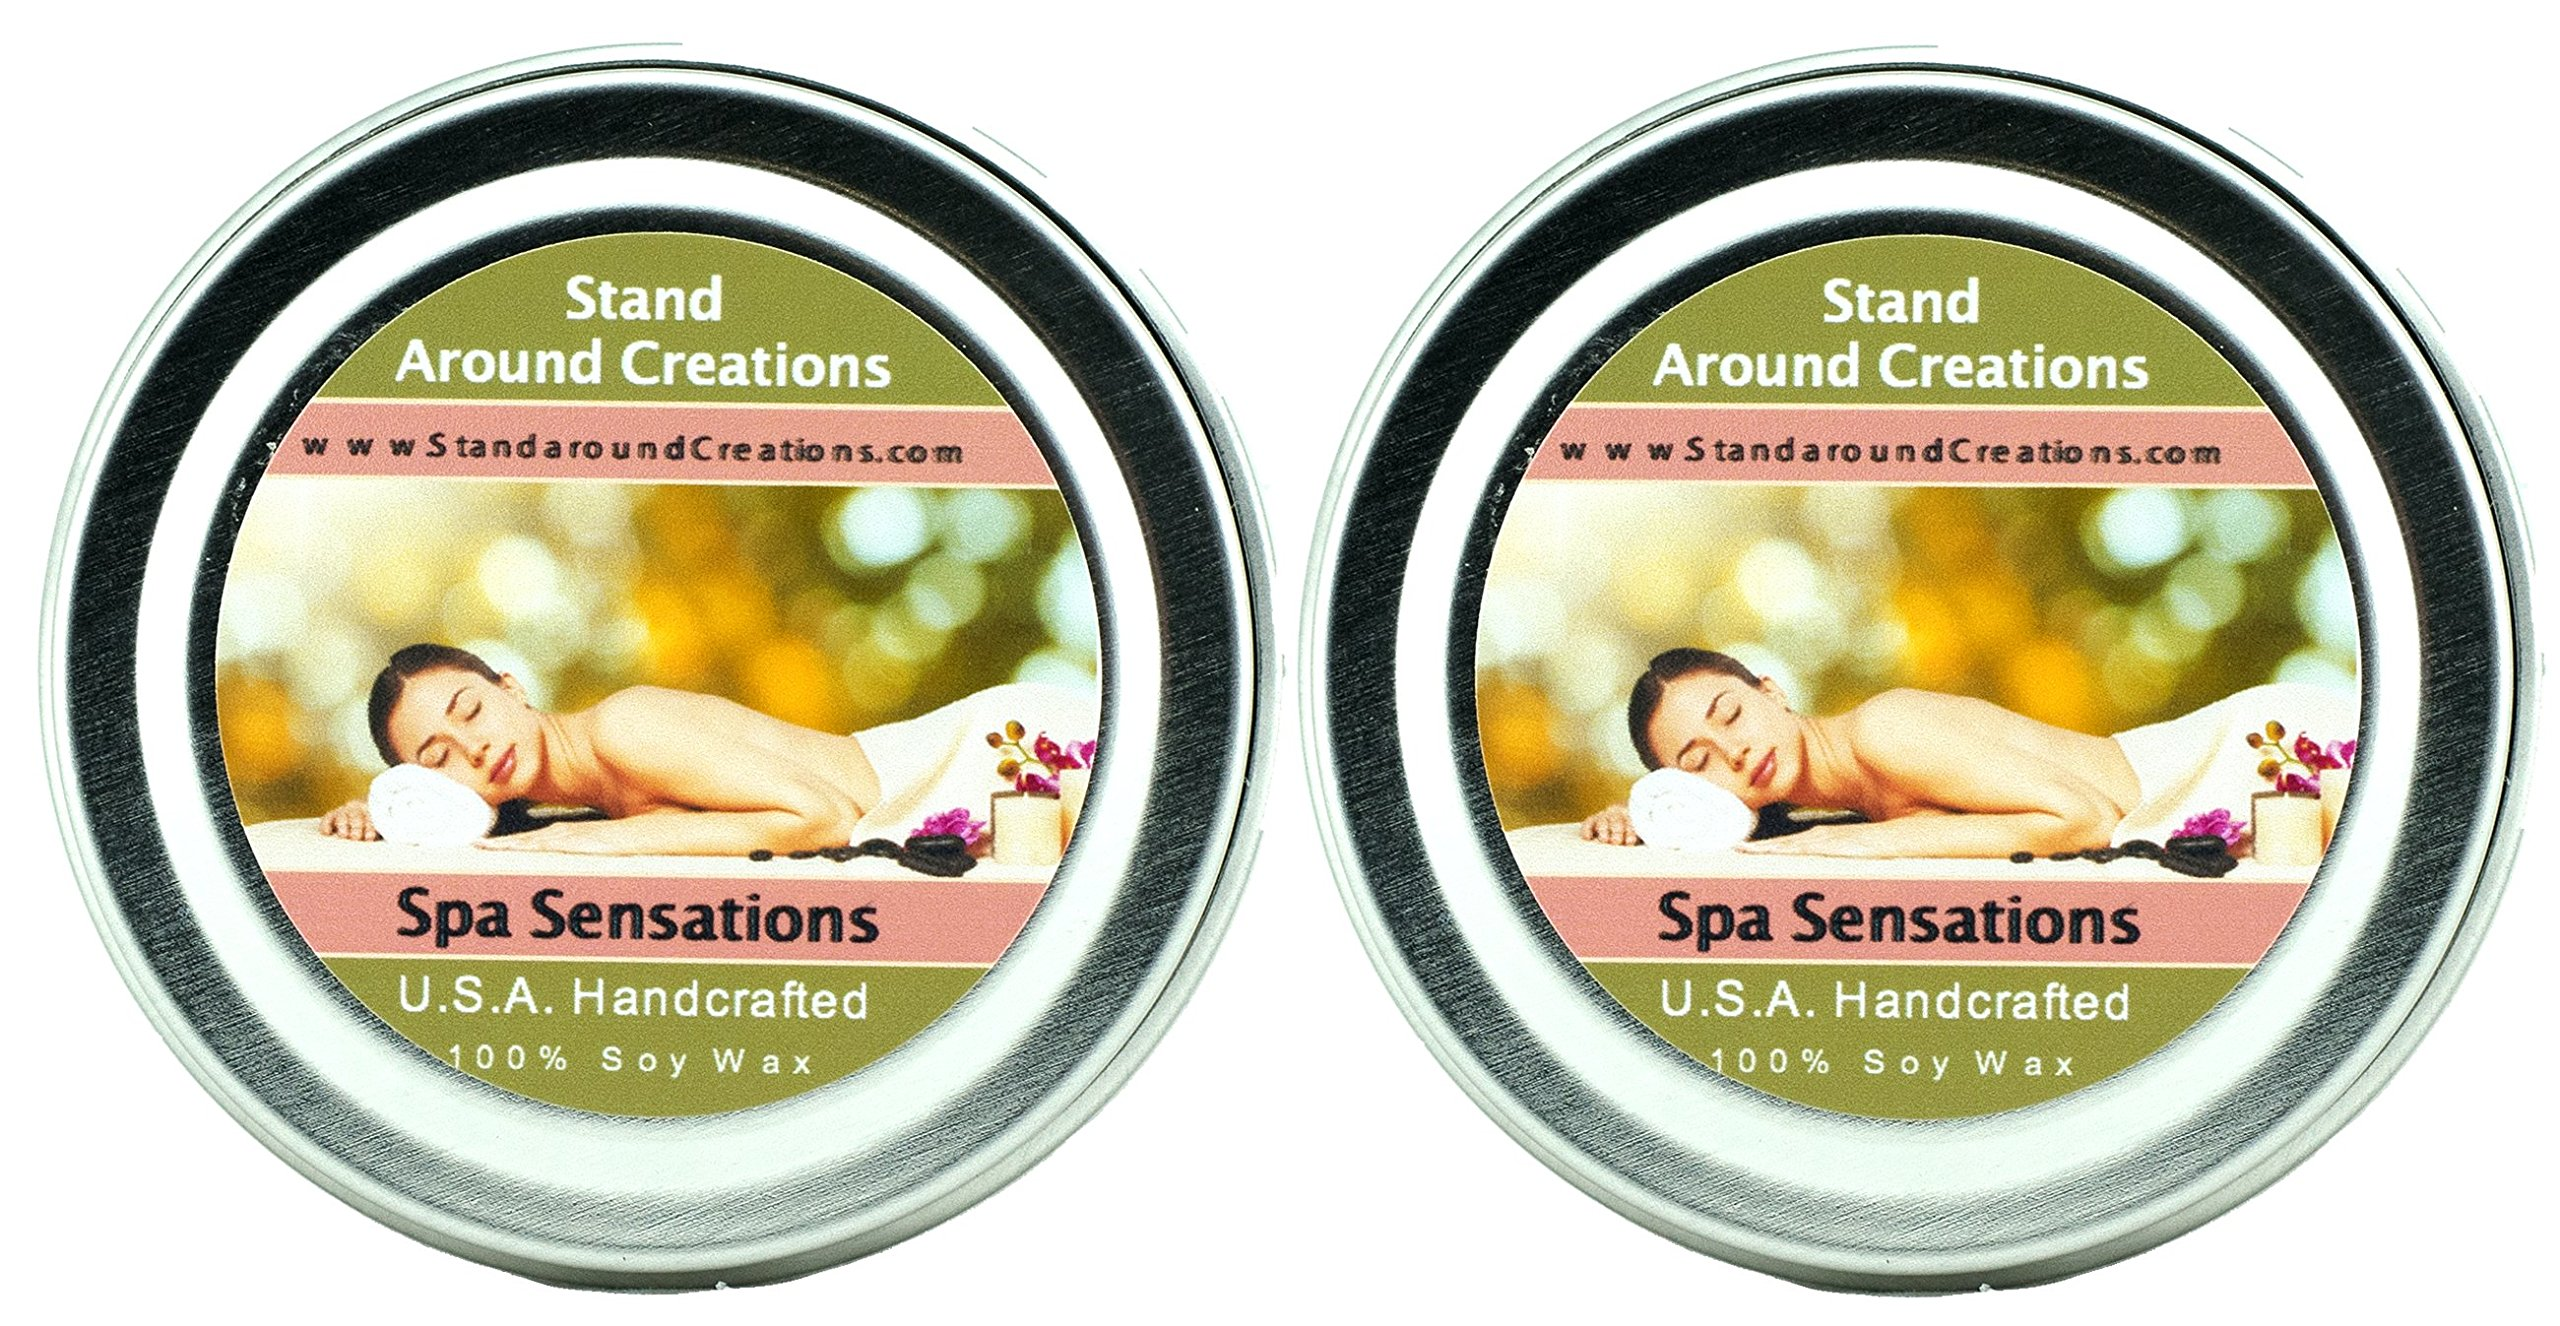 Premium 100% Soy Candles-Set of 2- 2 oz Tins- Spa: A calming and balanced fragrance w/ notes of lemongrass w/ hints of patchouli and sugar cane. Contains natural lemongrass, patchouli essential oils.